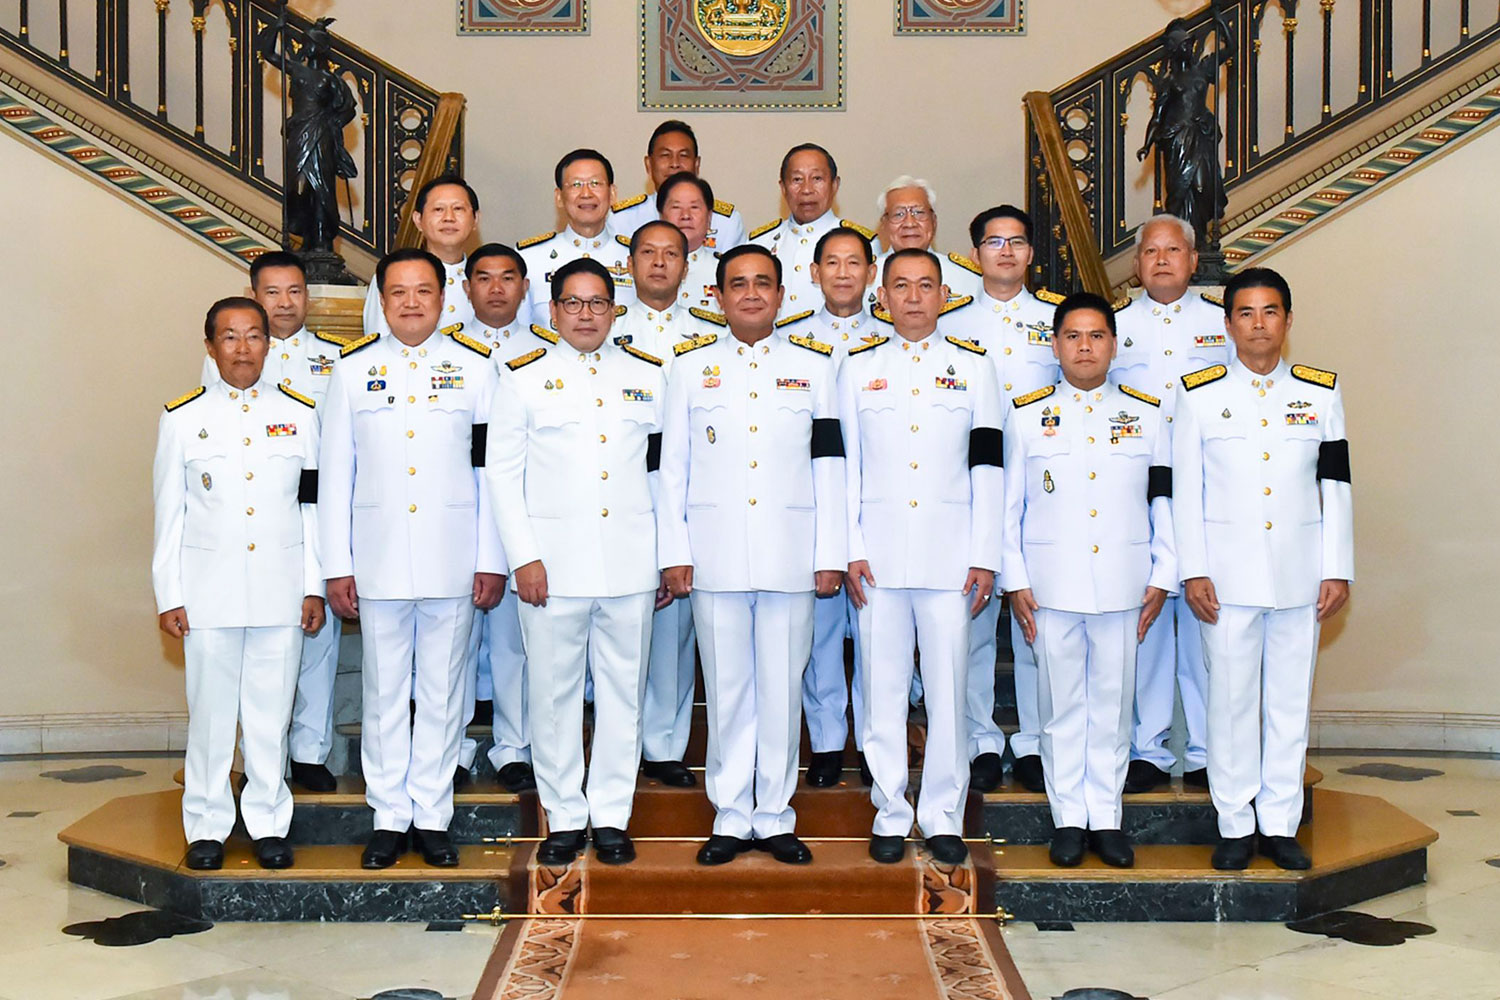 Prayut Chan-o-cha, centre, poses with representatives of coalition parties at Government House after receiving the royal command appointing him prime minister on June 11. The World Bank warns that lingering doubts about the cohesiveness of the 19-party government could affect investor and consumer confidence, and further delay major public infrastructure projects. (Government House photo)